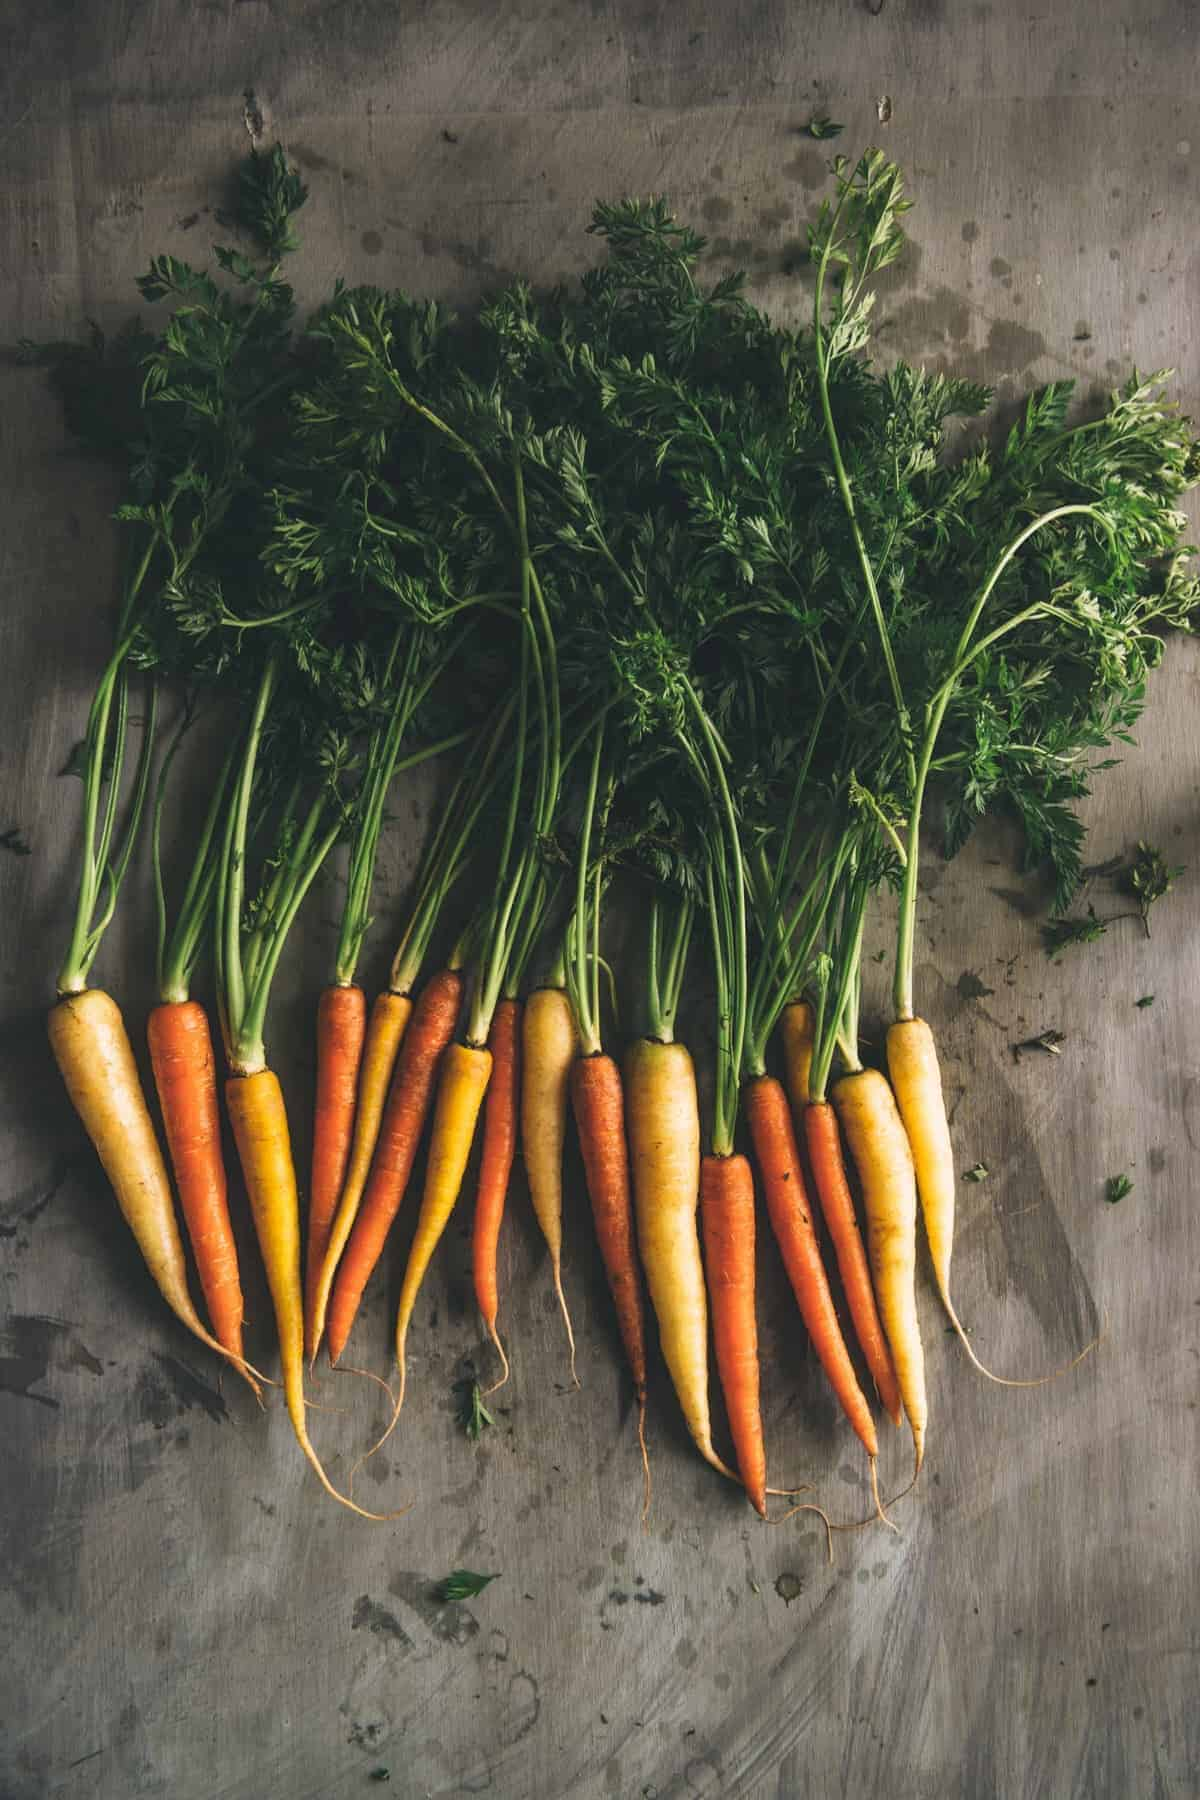 heirloom carrots laid out on a table